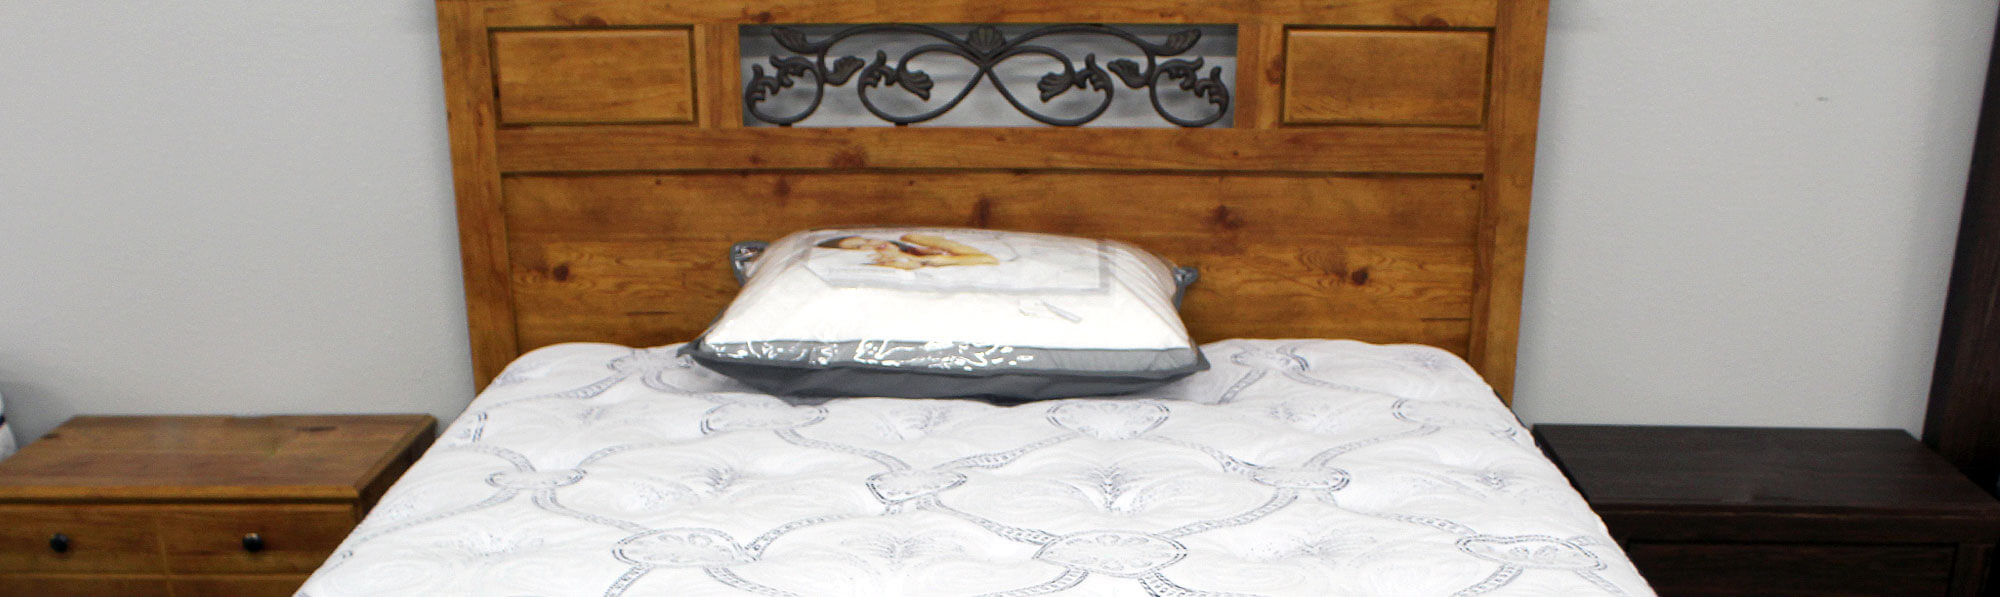 High-end symbol mattress with bedroom set